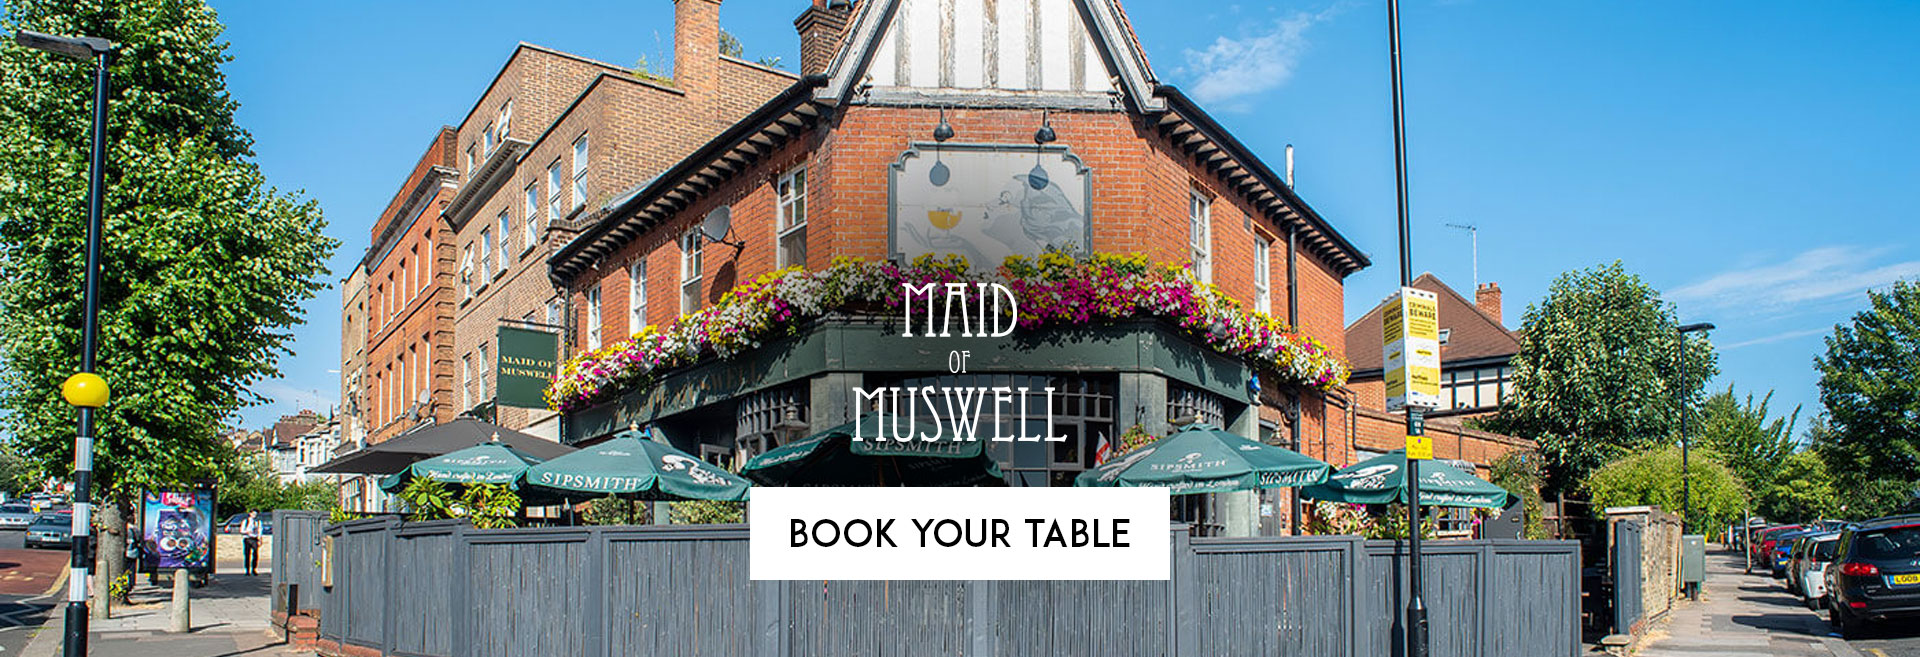 Book Your Table at The Maid Of Muswell